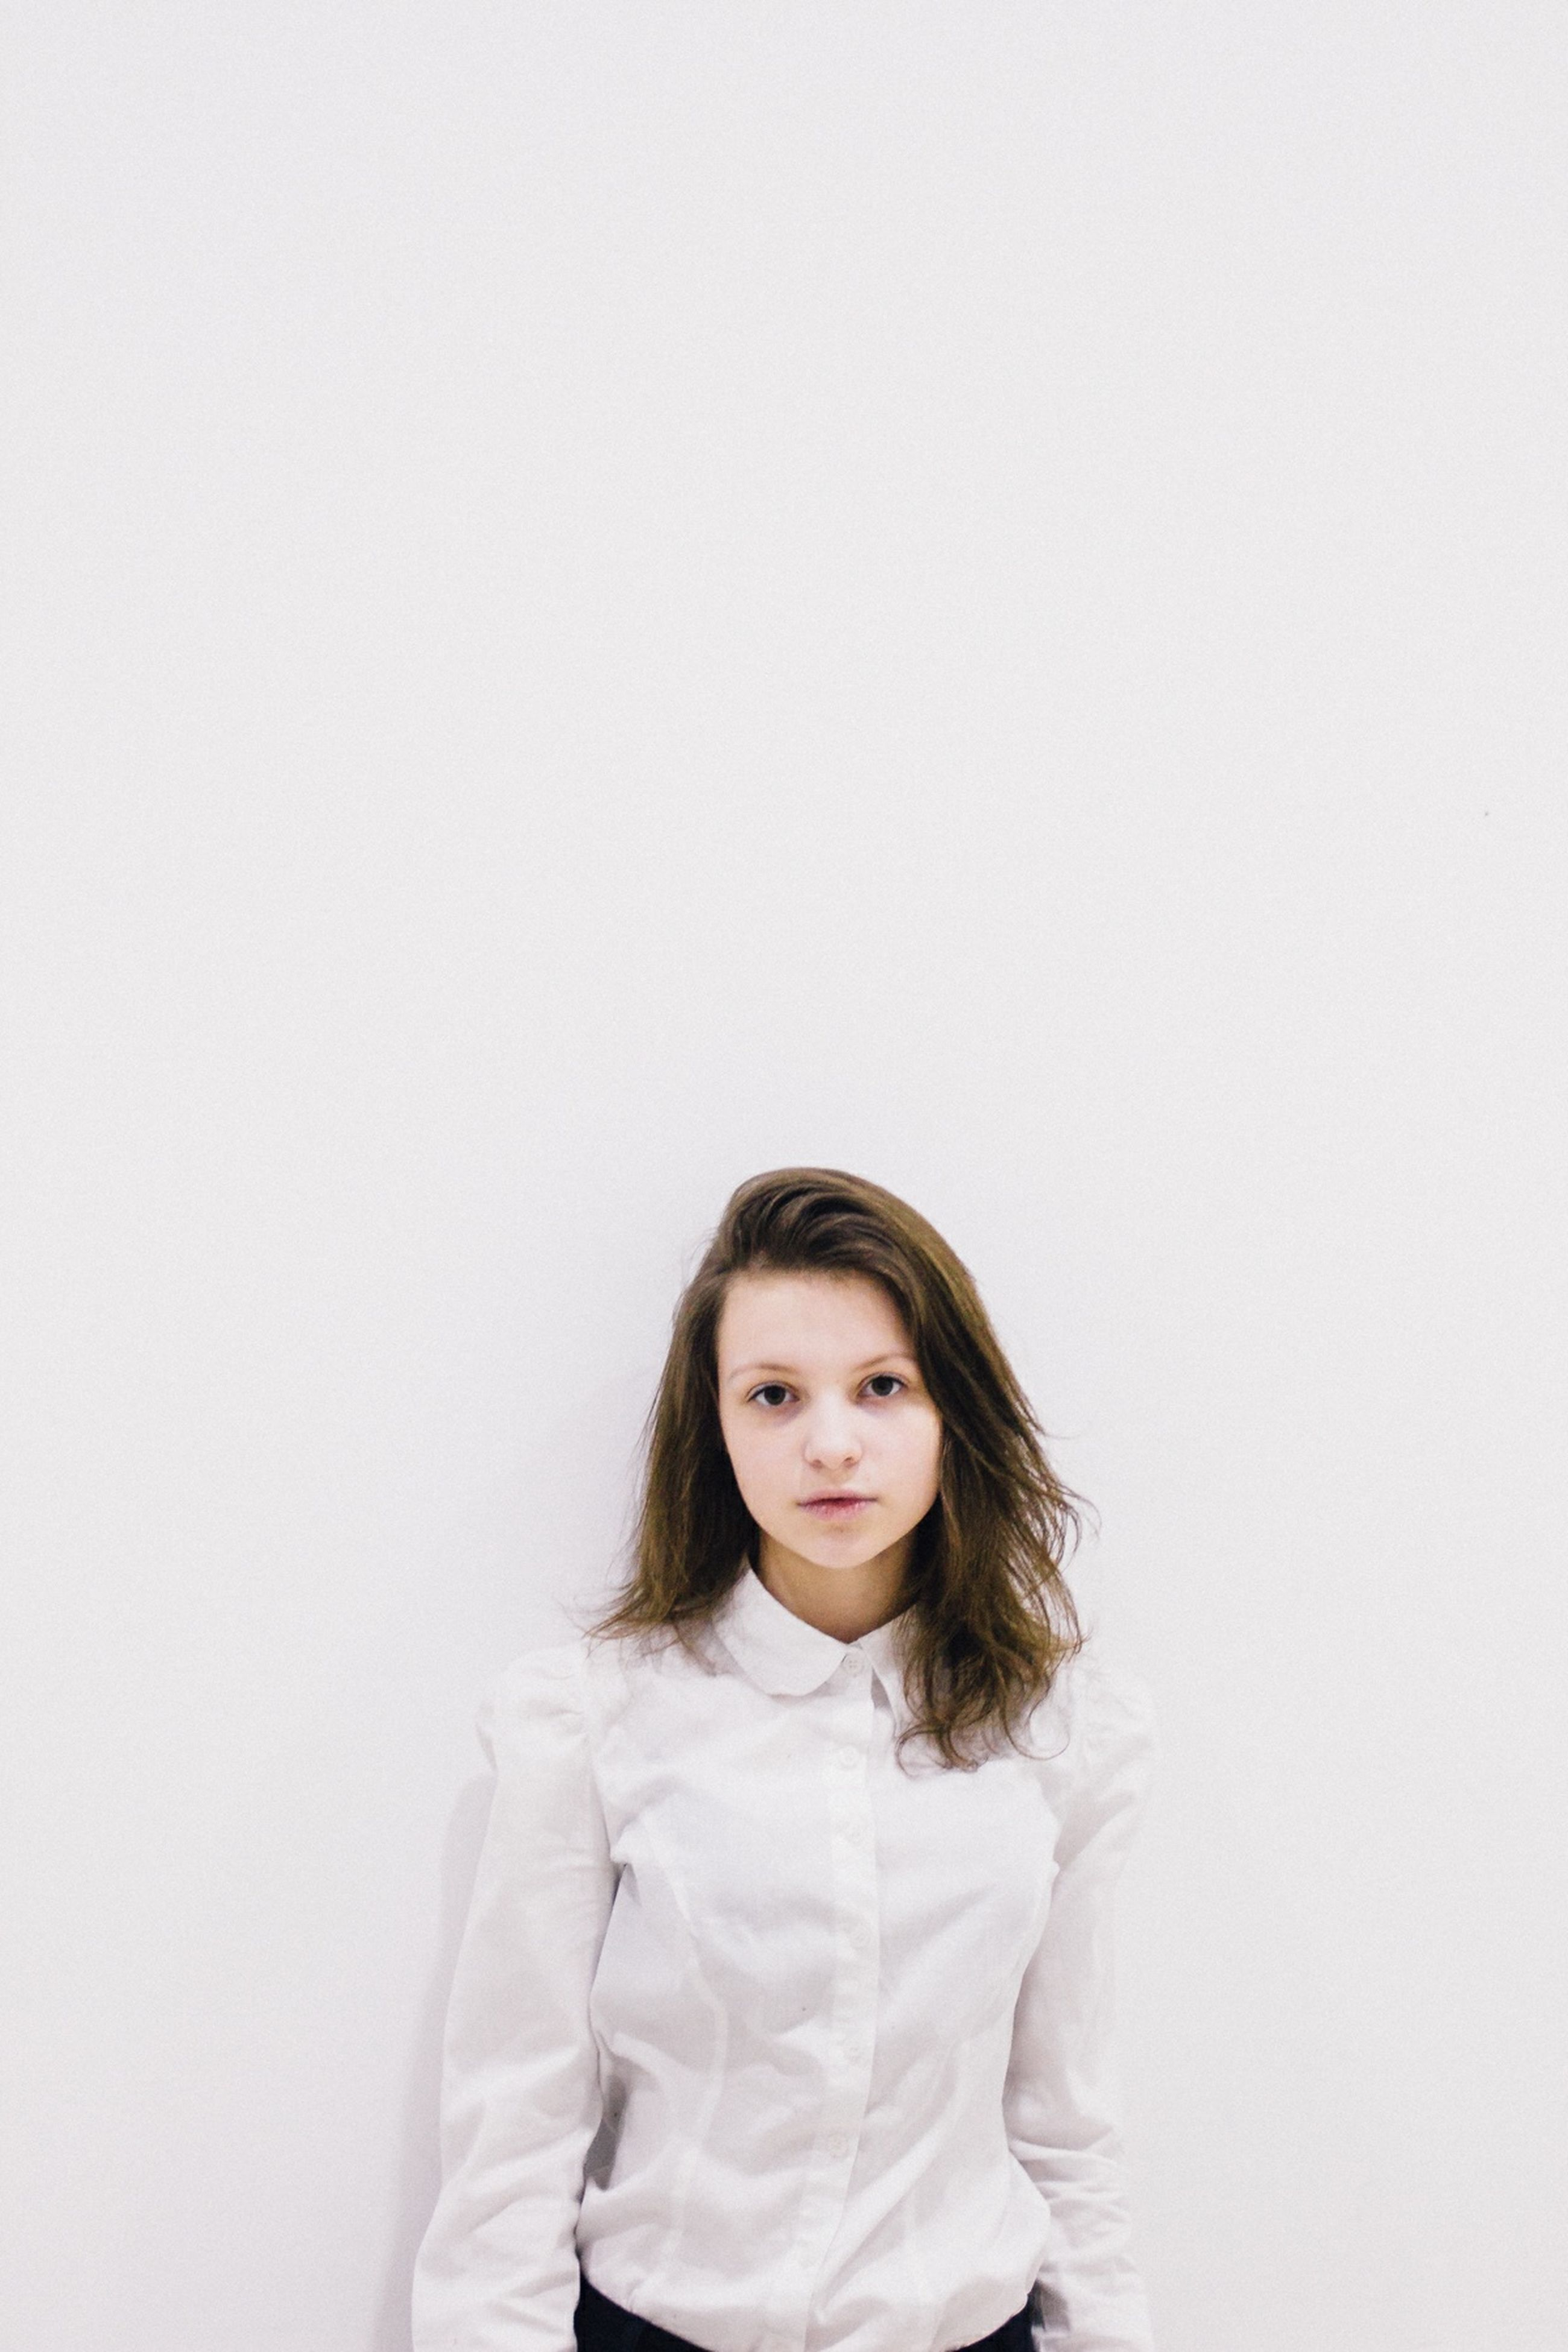 portrait, looking at camera, young adult, person, young women, front view, lifestyles, studio shot, copy space, casual clothing, white background, waist up, leisure activity, long hair, standing, smiling, headshot